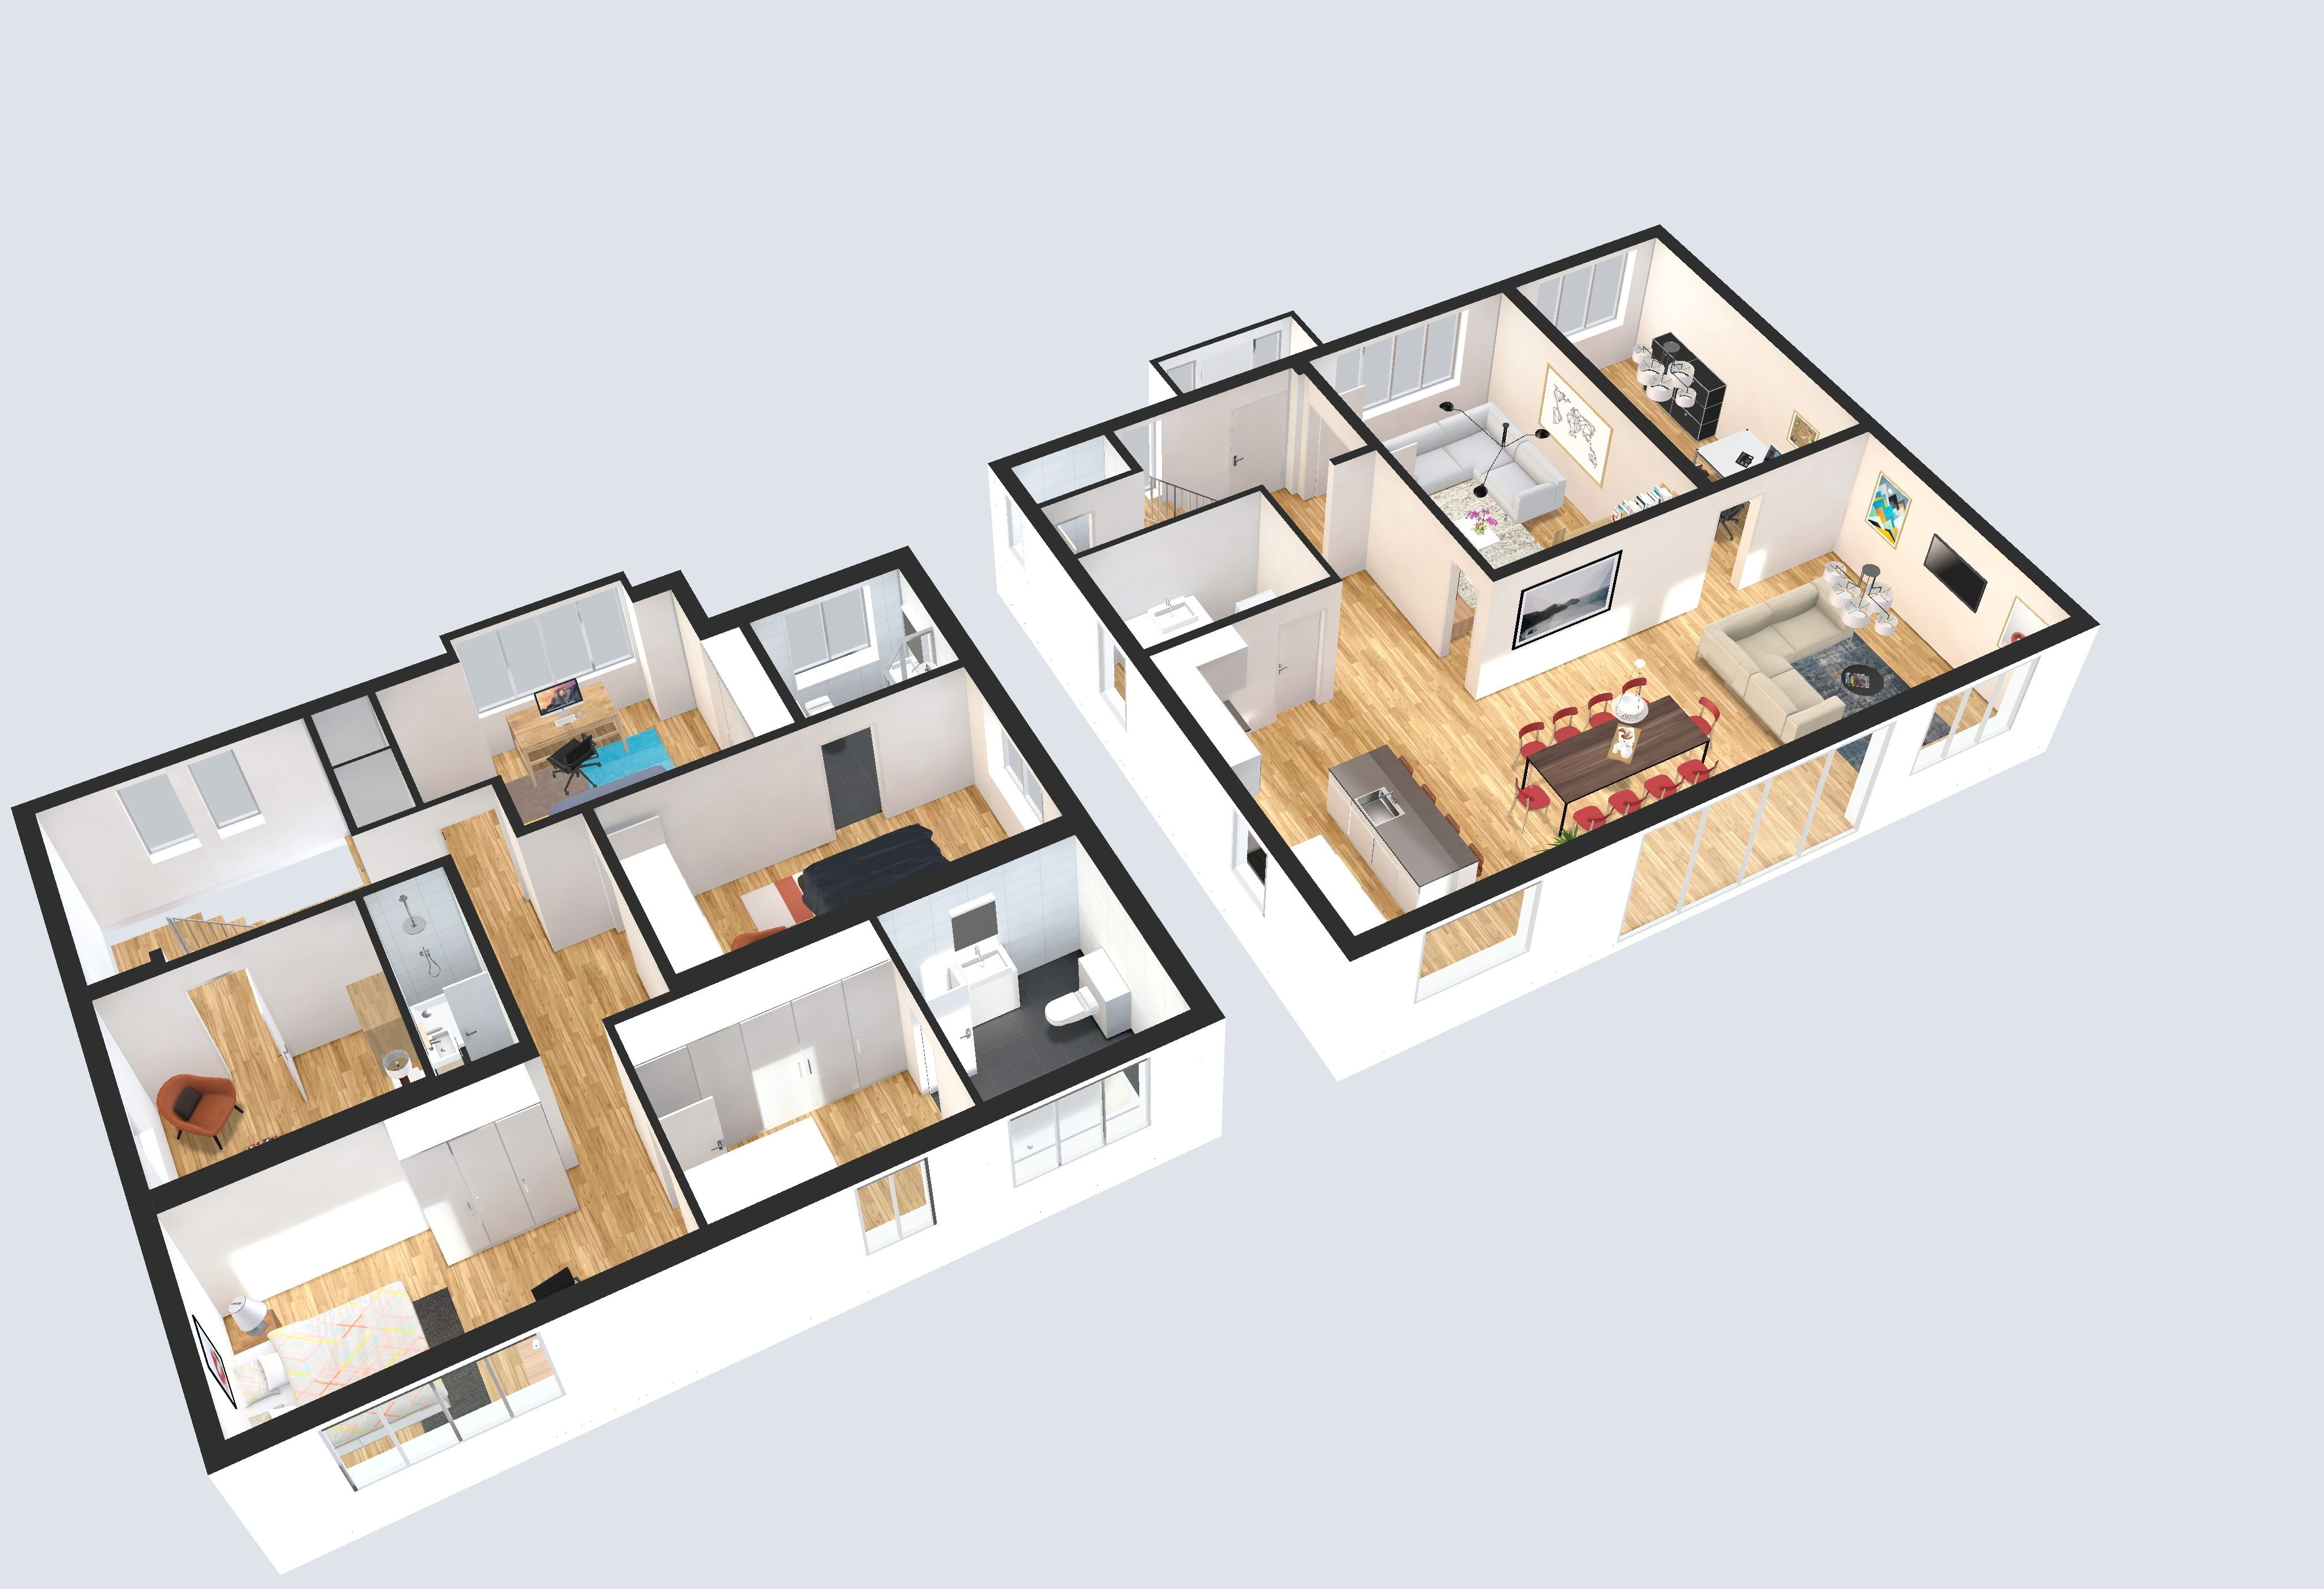 Create High Resolution Floor Plan images from our 3D interactive